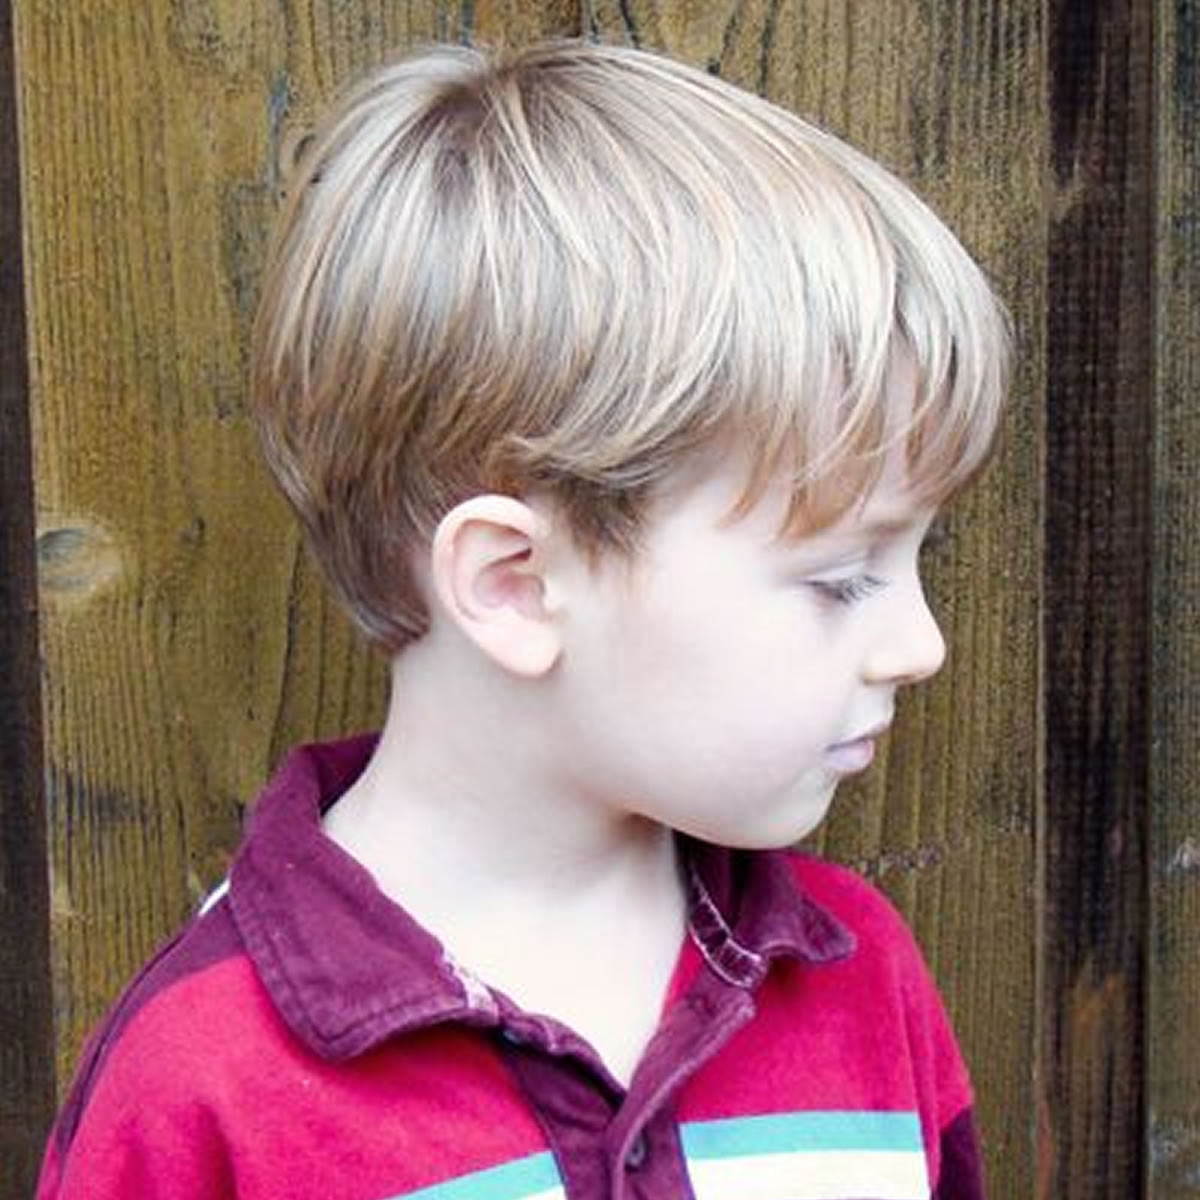 Little Boys Haircuts 2019  Great Hairstyles and Haircuts ideas for Little Boys 2018